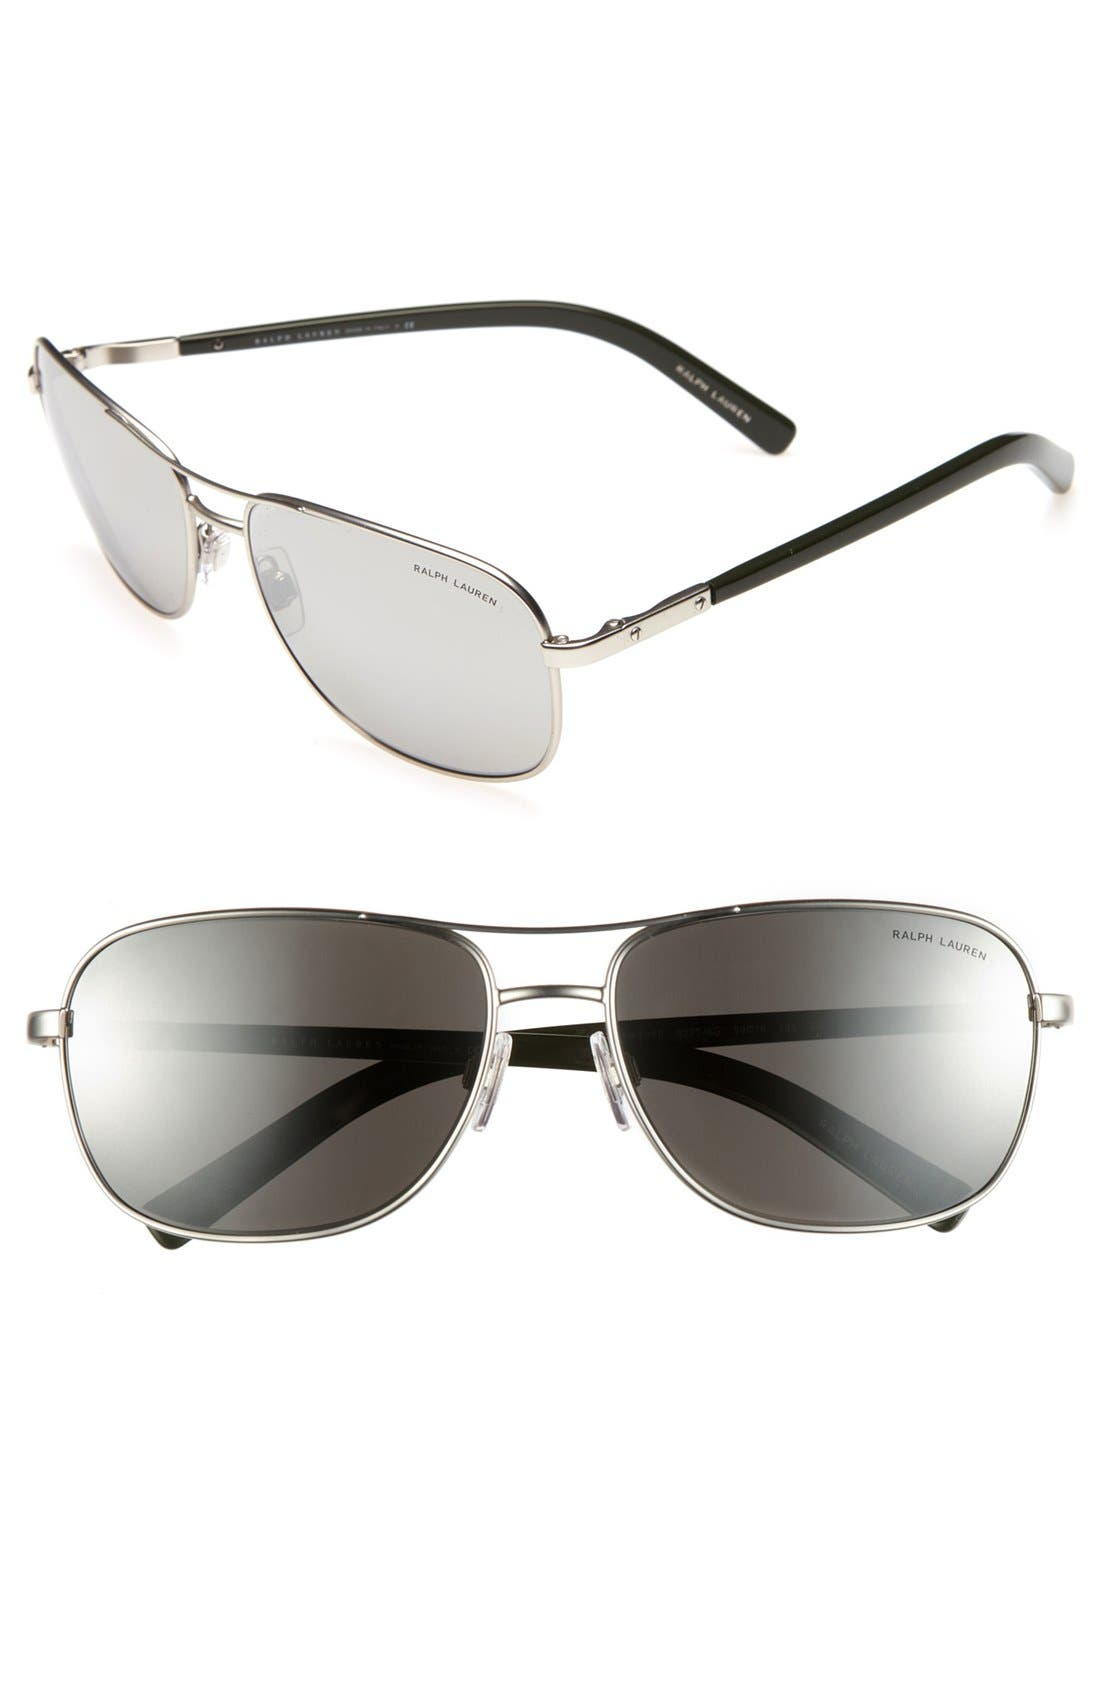 Alternate Image 1 Selected - Polo Ralph Lauren 59mm Keyhole Sunglasses